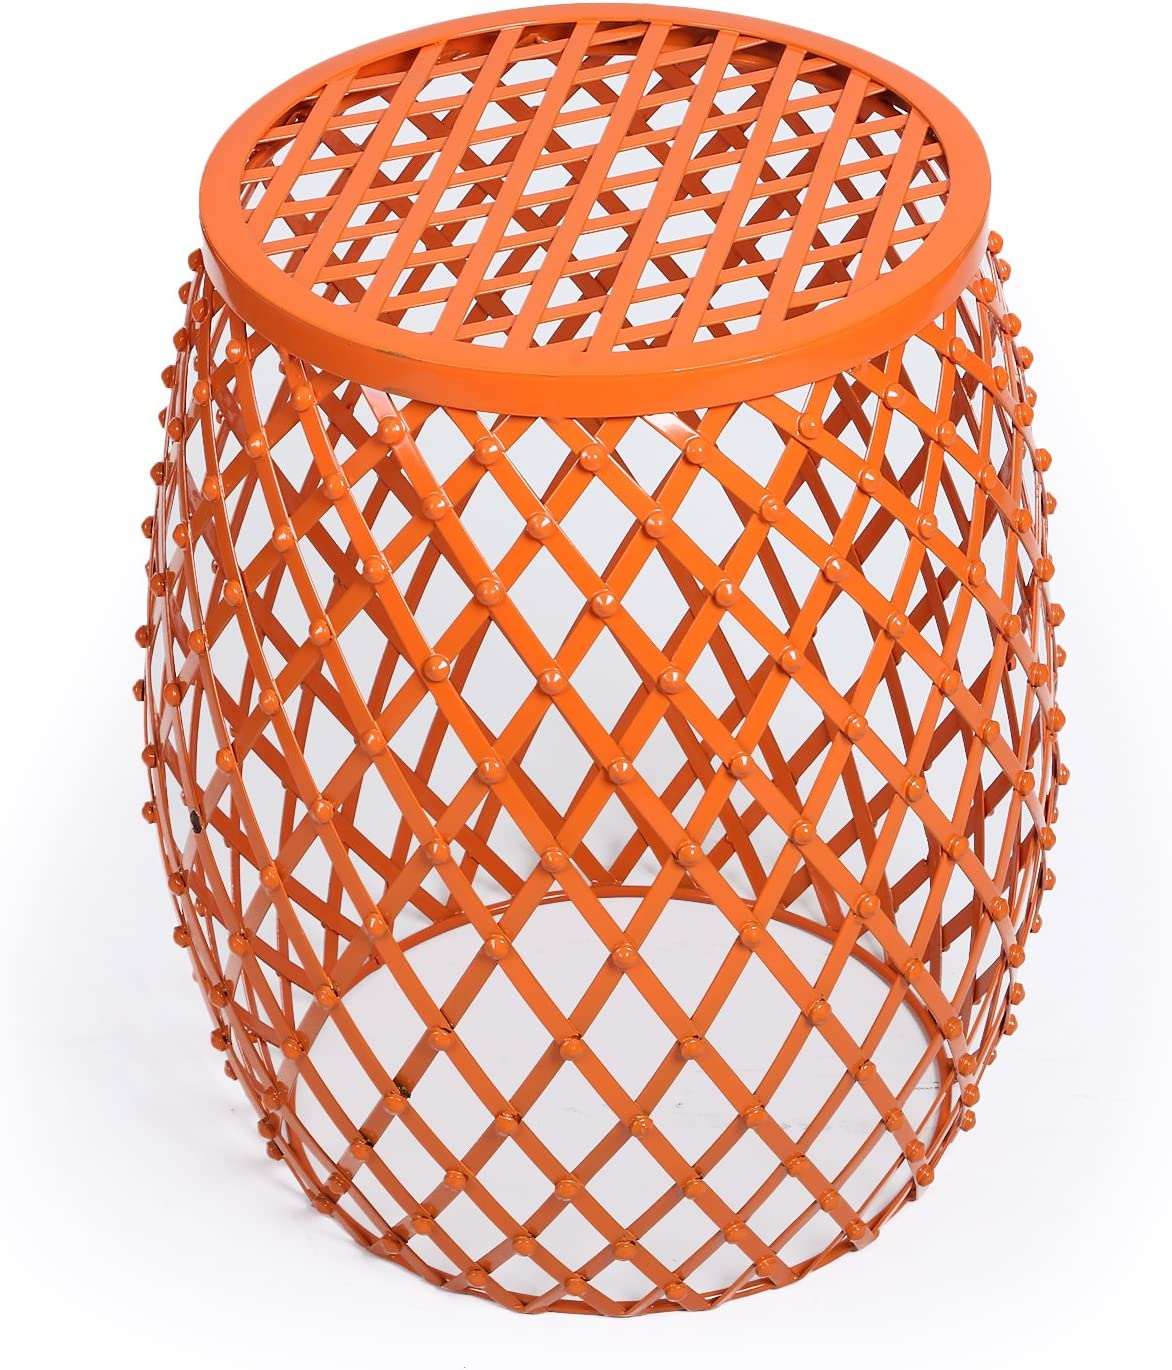 Adeco Home Garden Accents Wire Round Iron Metal Stool Side End Table Plant Stand Chair, Hatched Diamond Pattern, for Indoor Outdoor, Orange Red